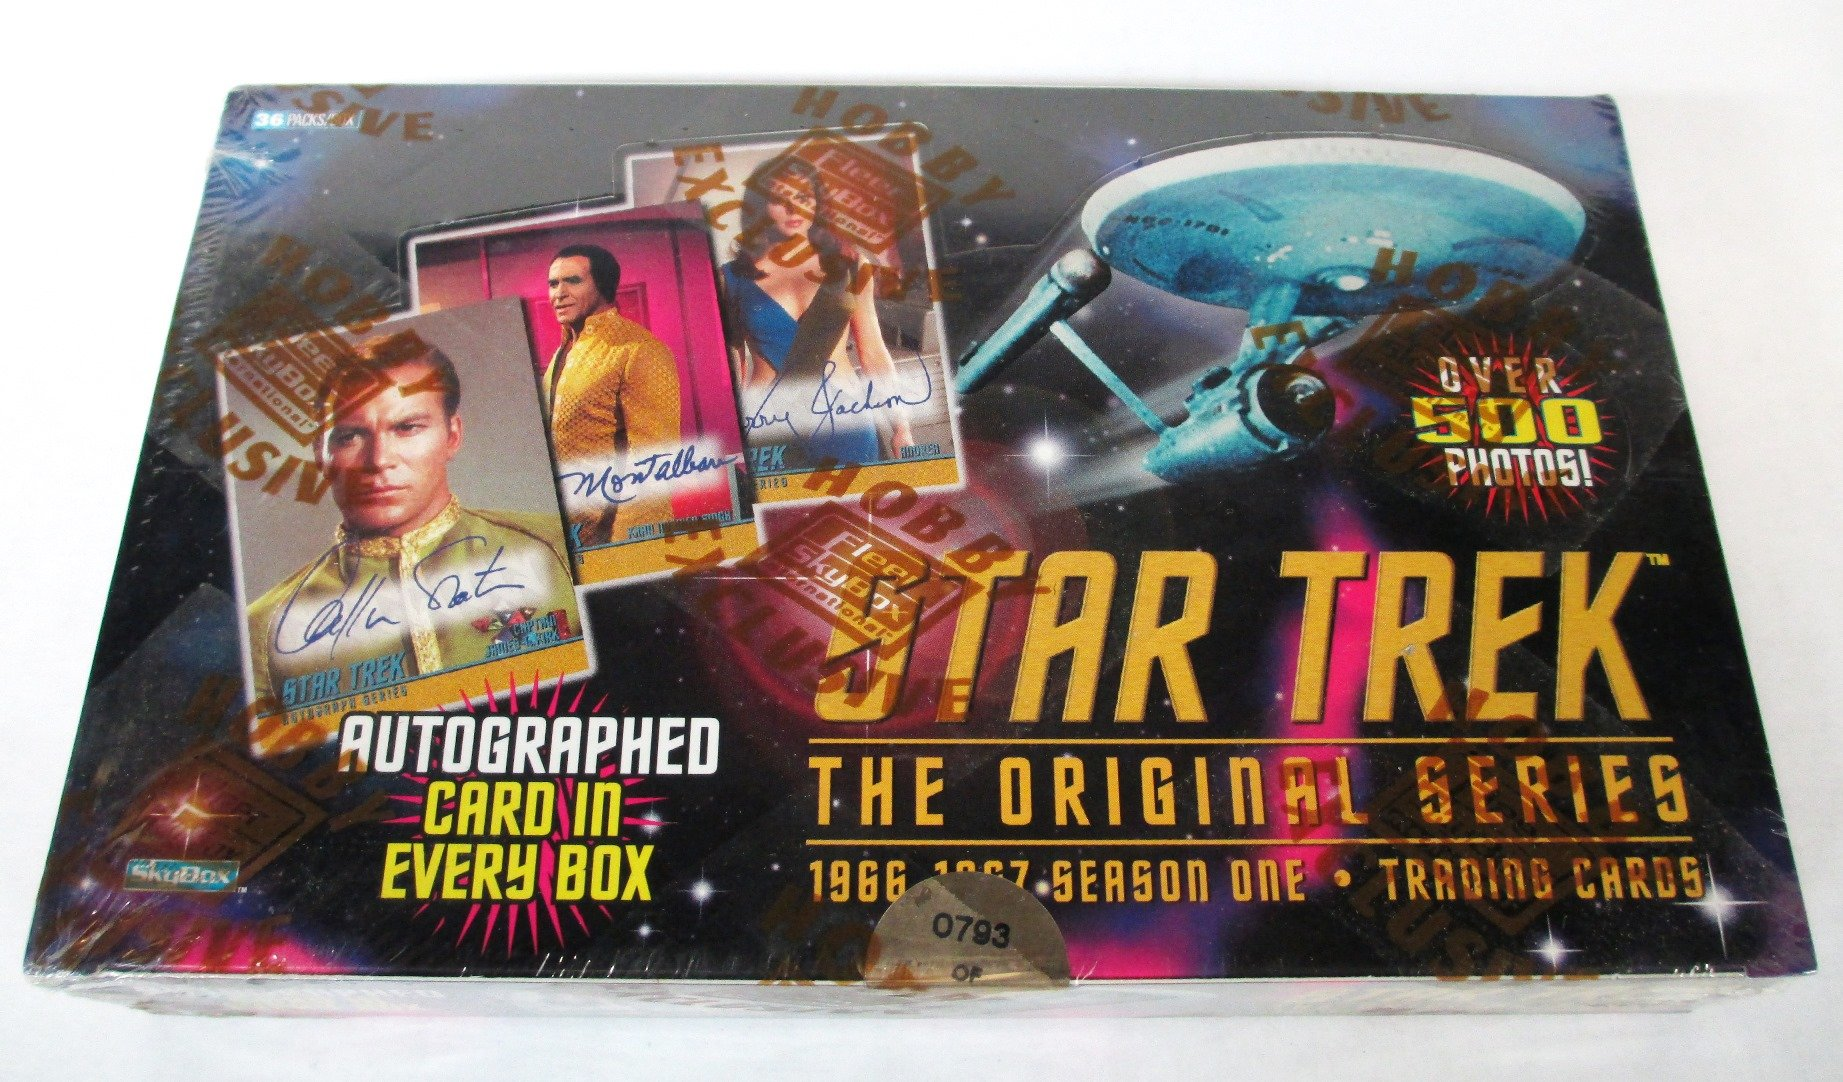 Star Trek The Original Series 1966-1967 Season One Trading Cards Box Set - With Autographed Card!